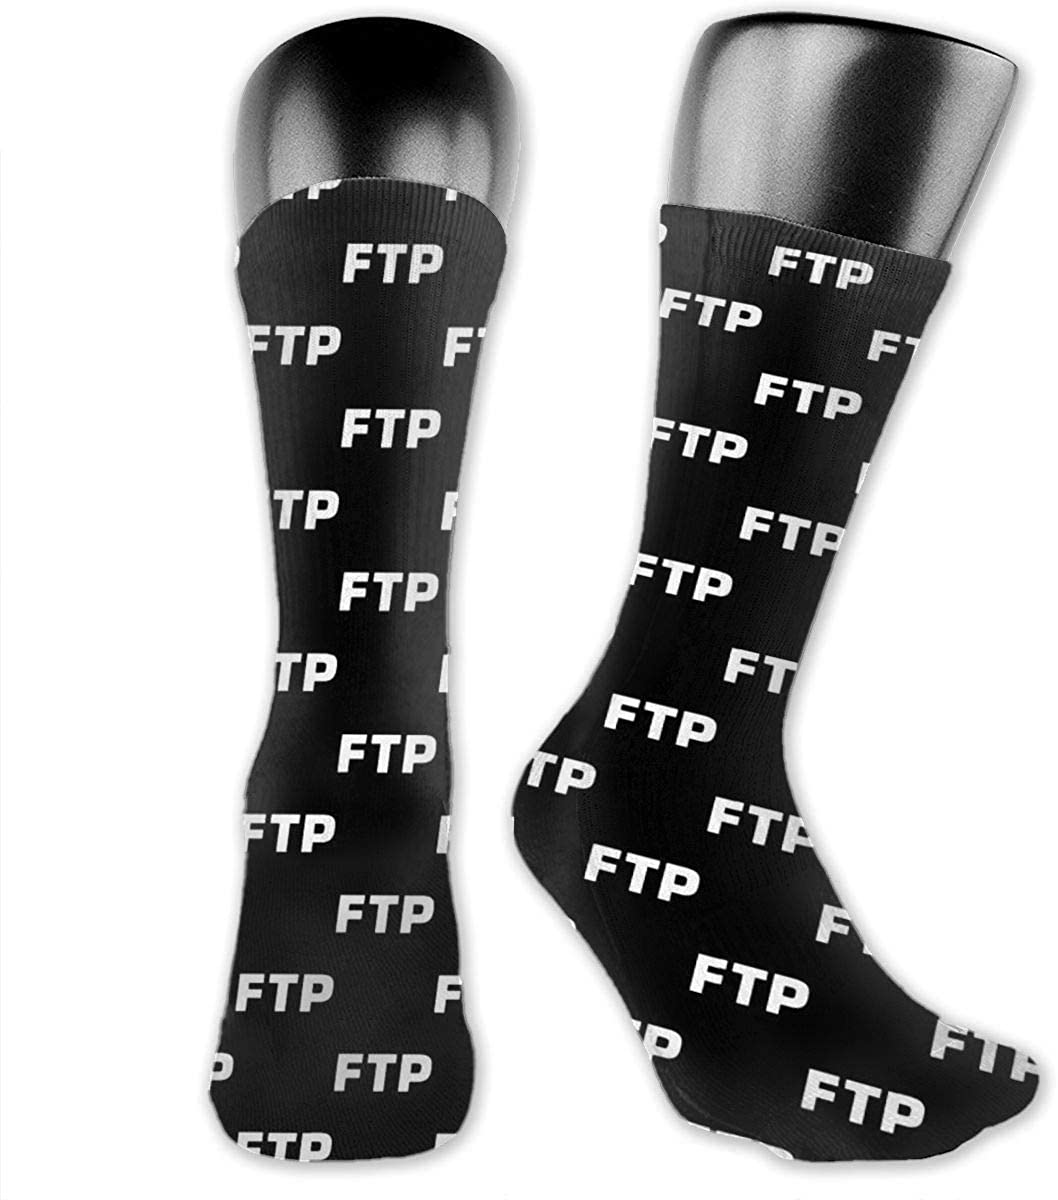 All Over Fuck The Population Ftp (All Enabled) Unisex Fun Novelty Mid-Calf Boot Socks Fashion Breathable Dress Crew Socks